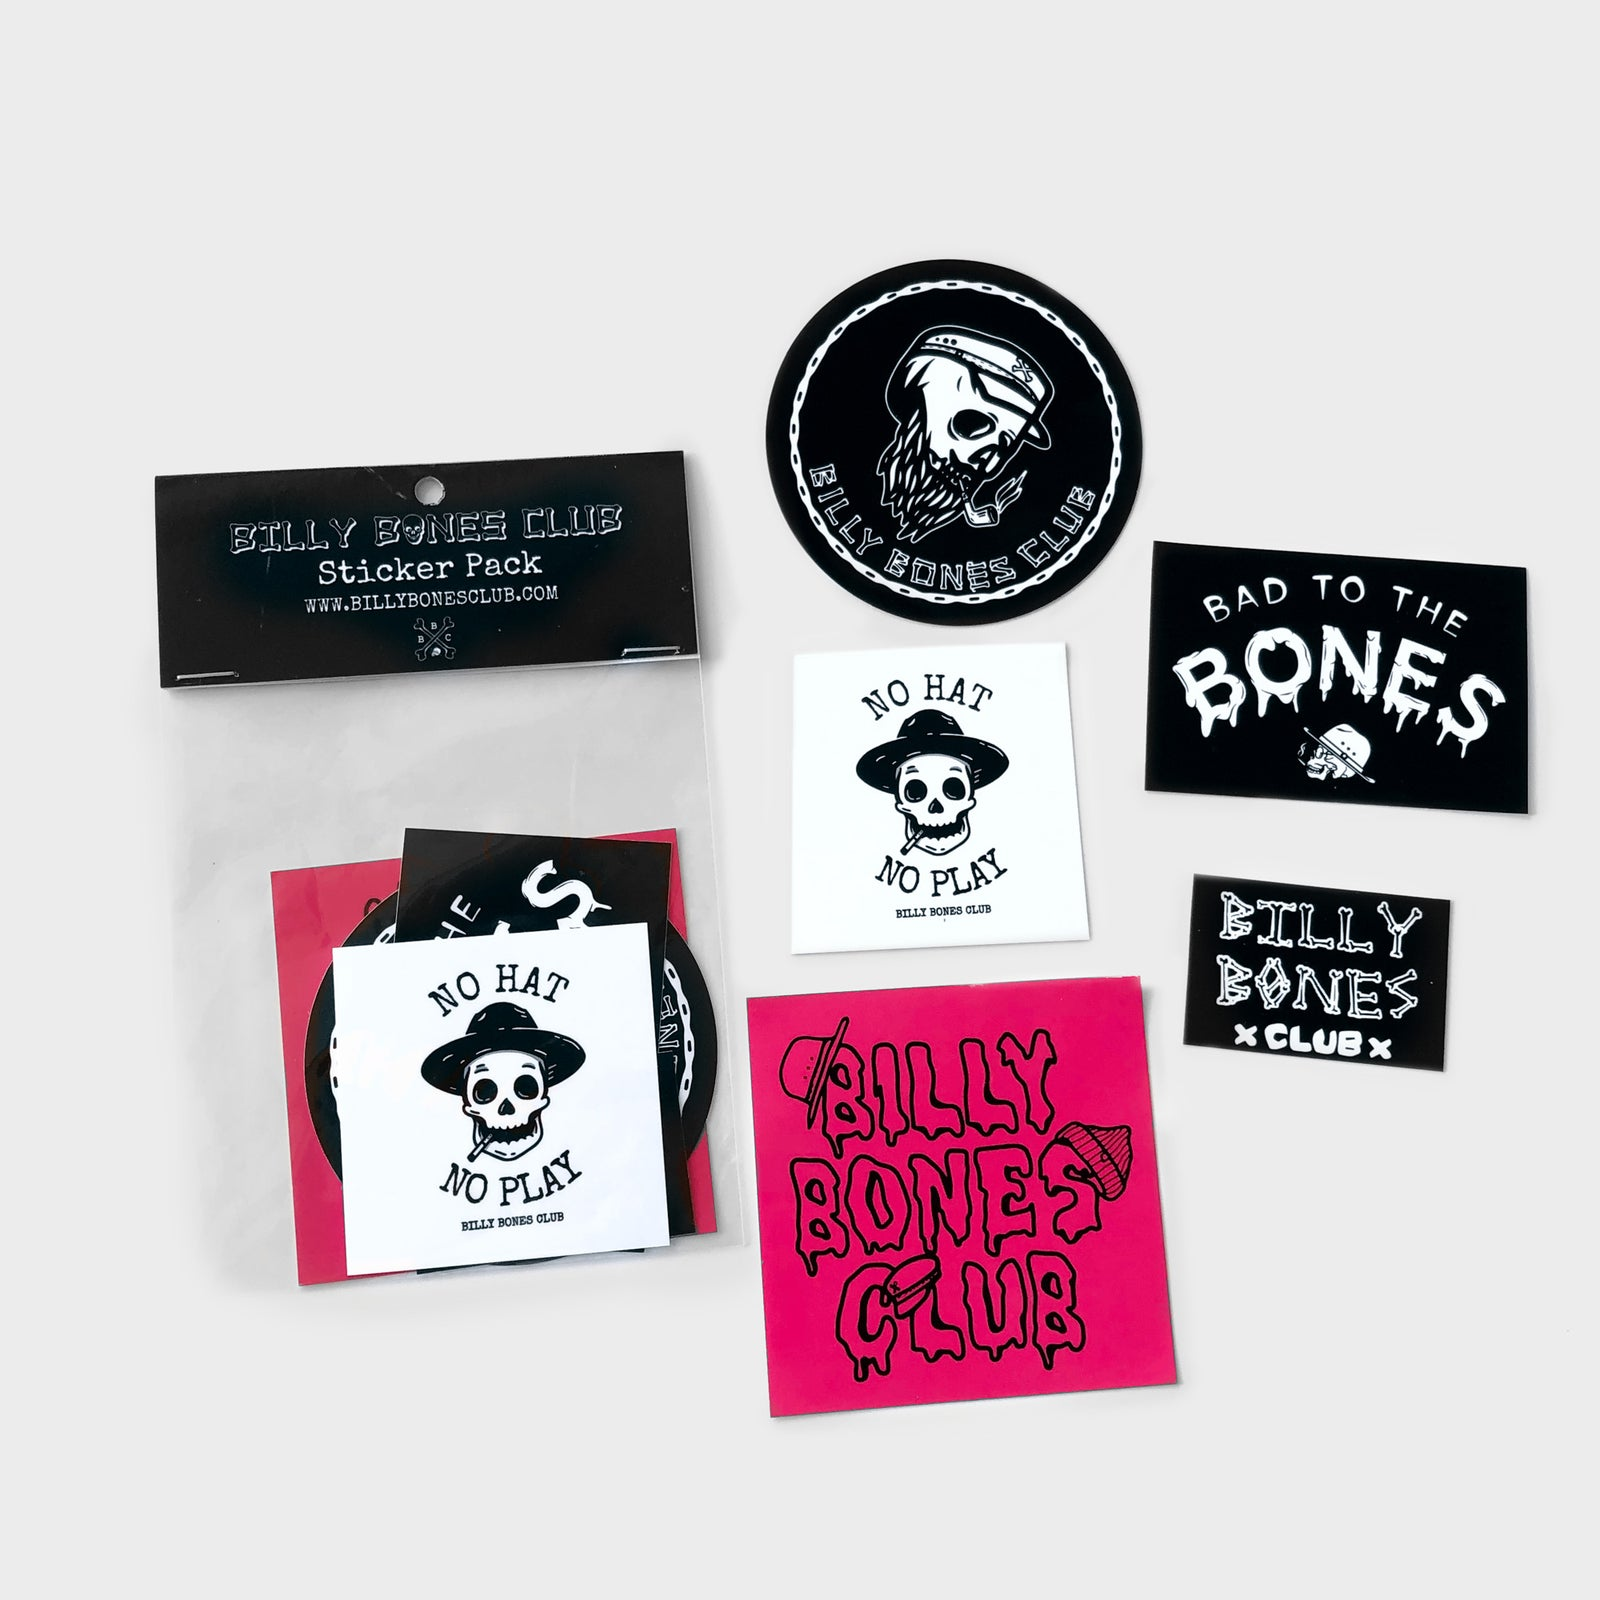 BAD TO THE BONES STICKER PACK